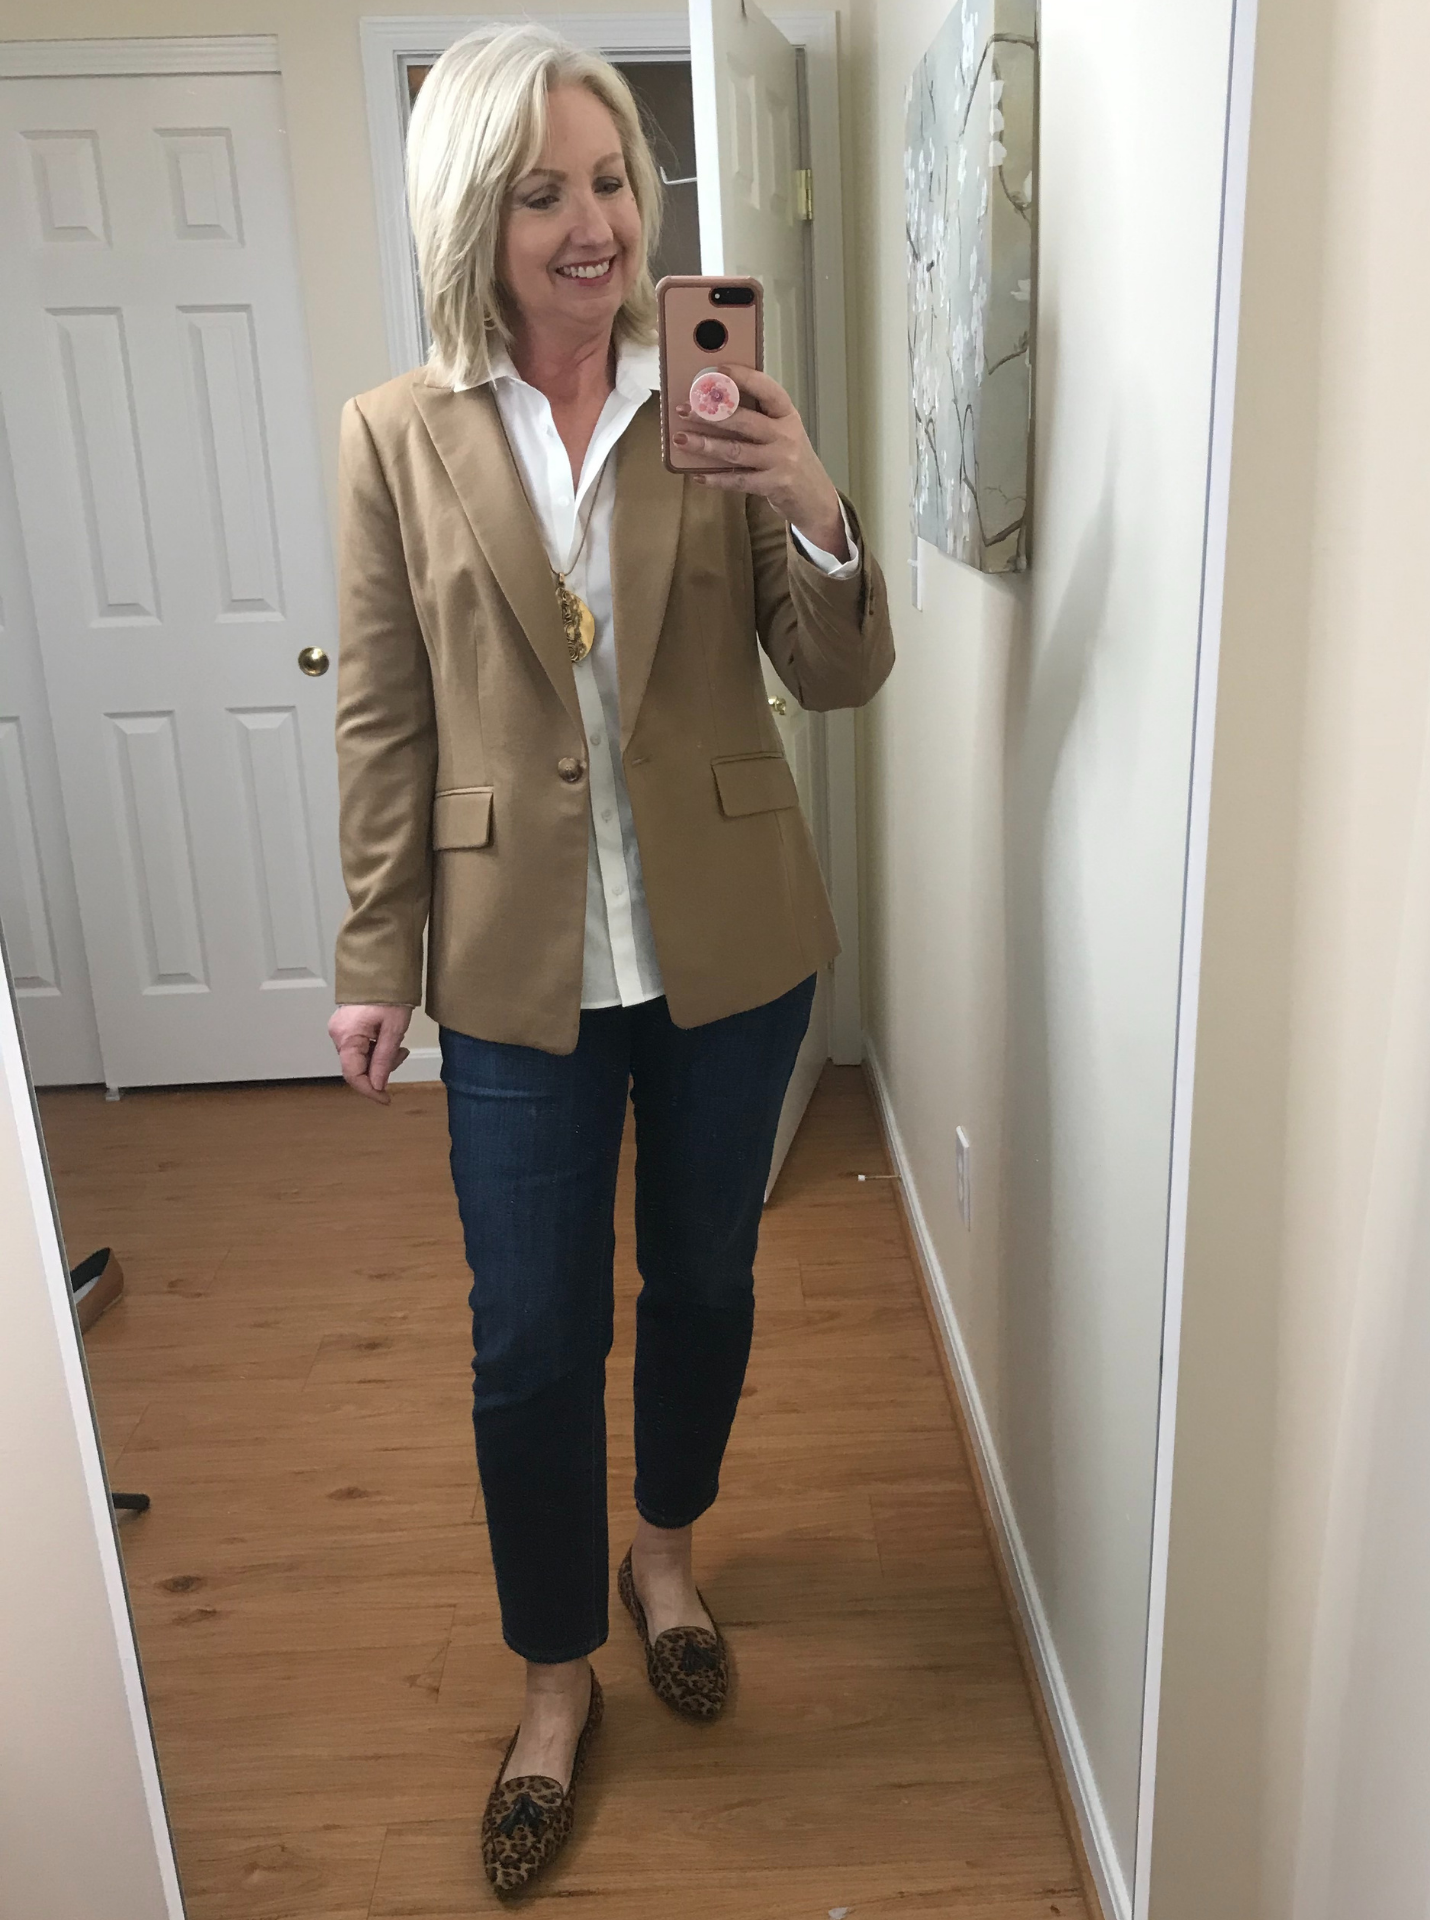 Ankle Jeans White Shirt No Tuck Belt Leopard Flats Camel Jacket